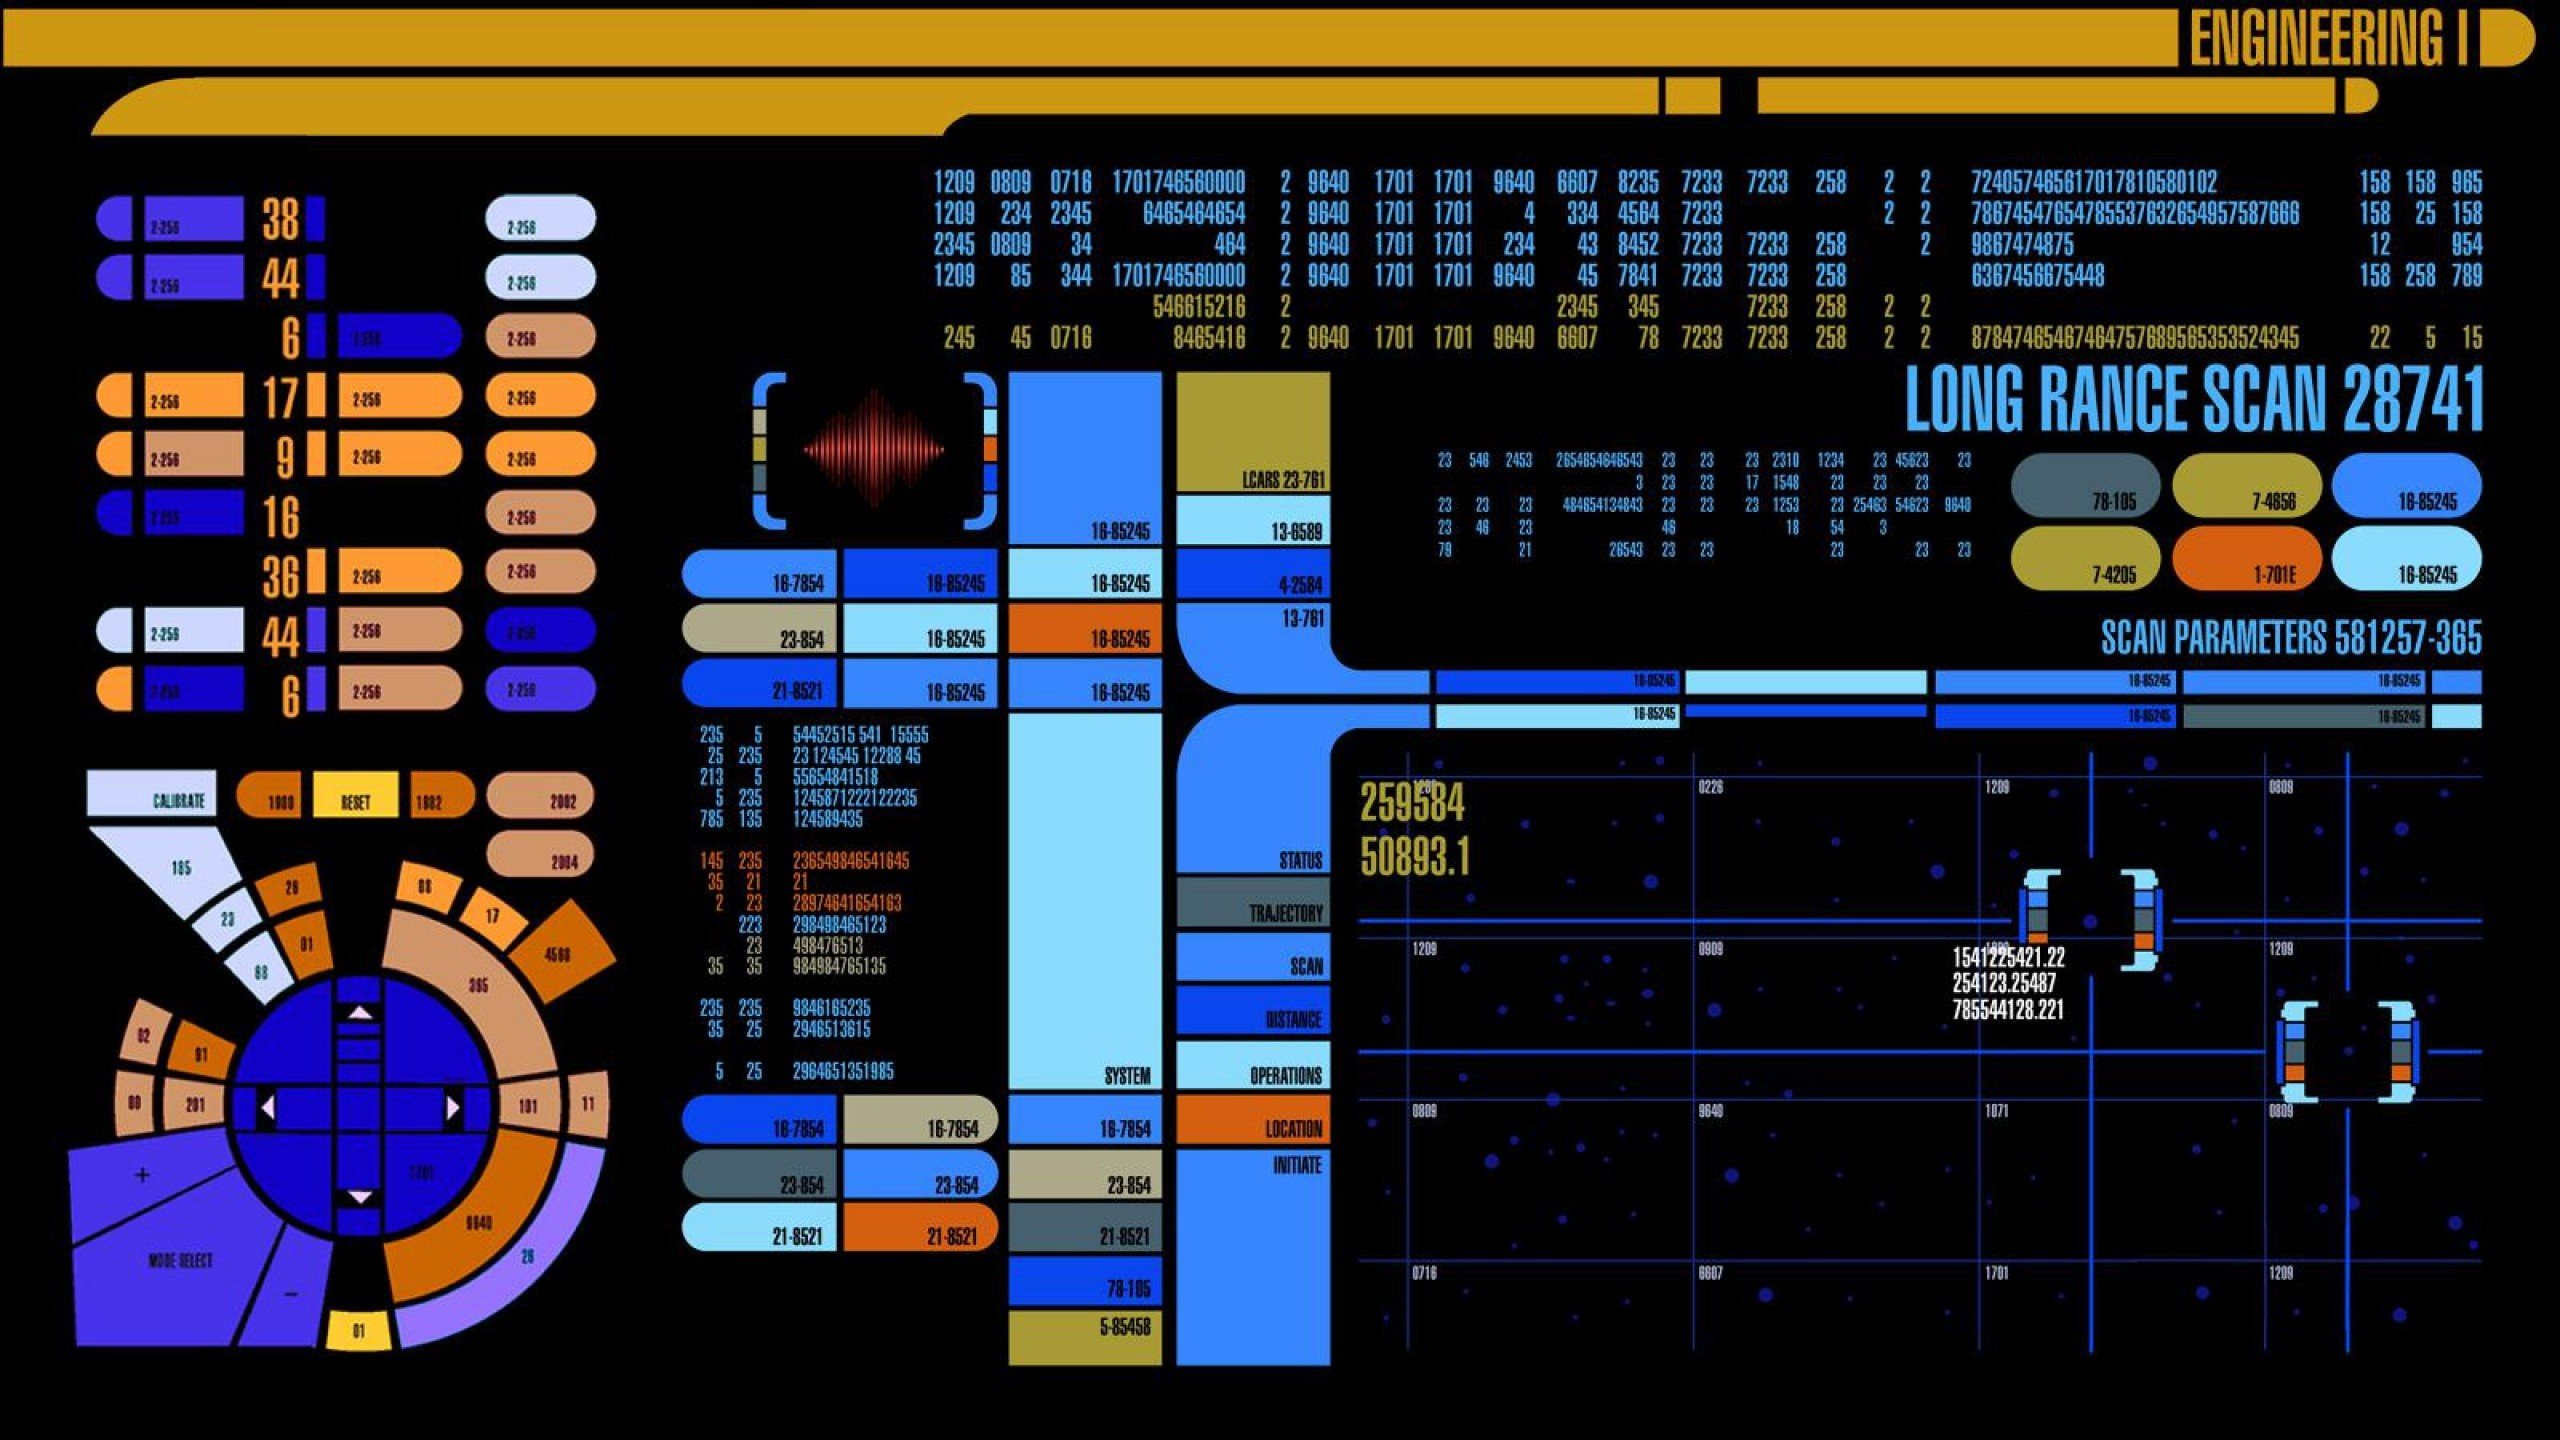 Star trek padd ipad wallpaper 59 images - Lcars ipad app ...